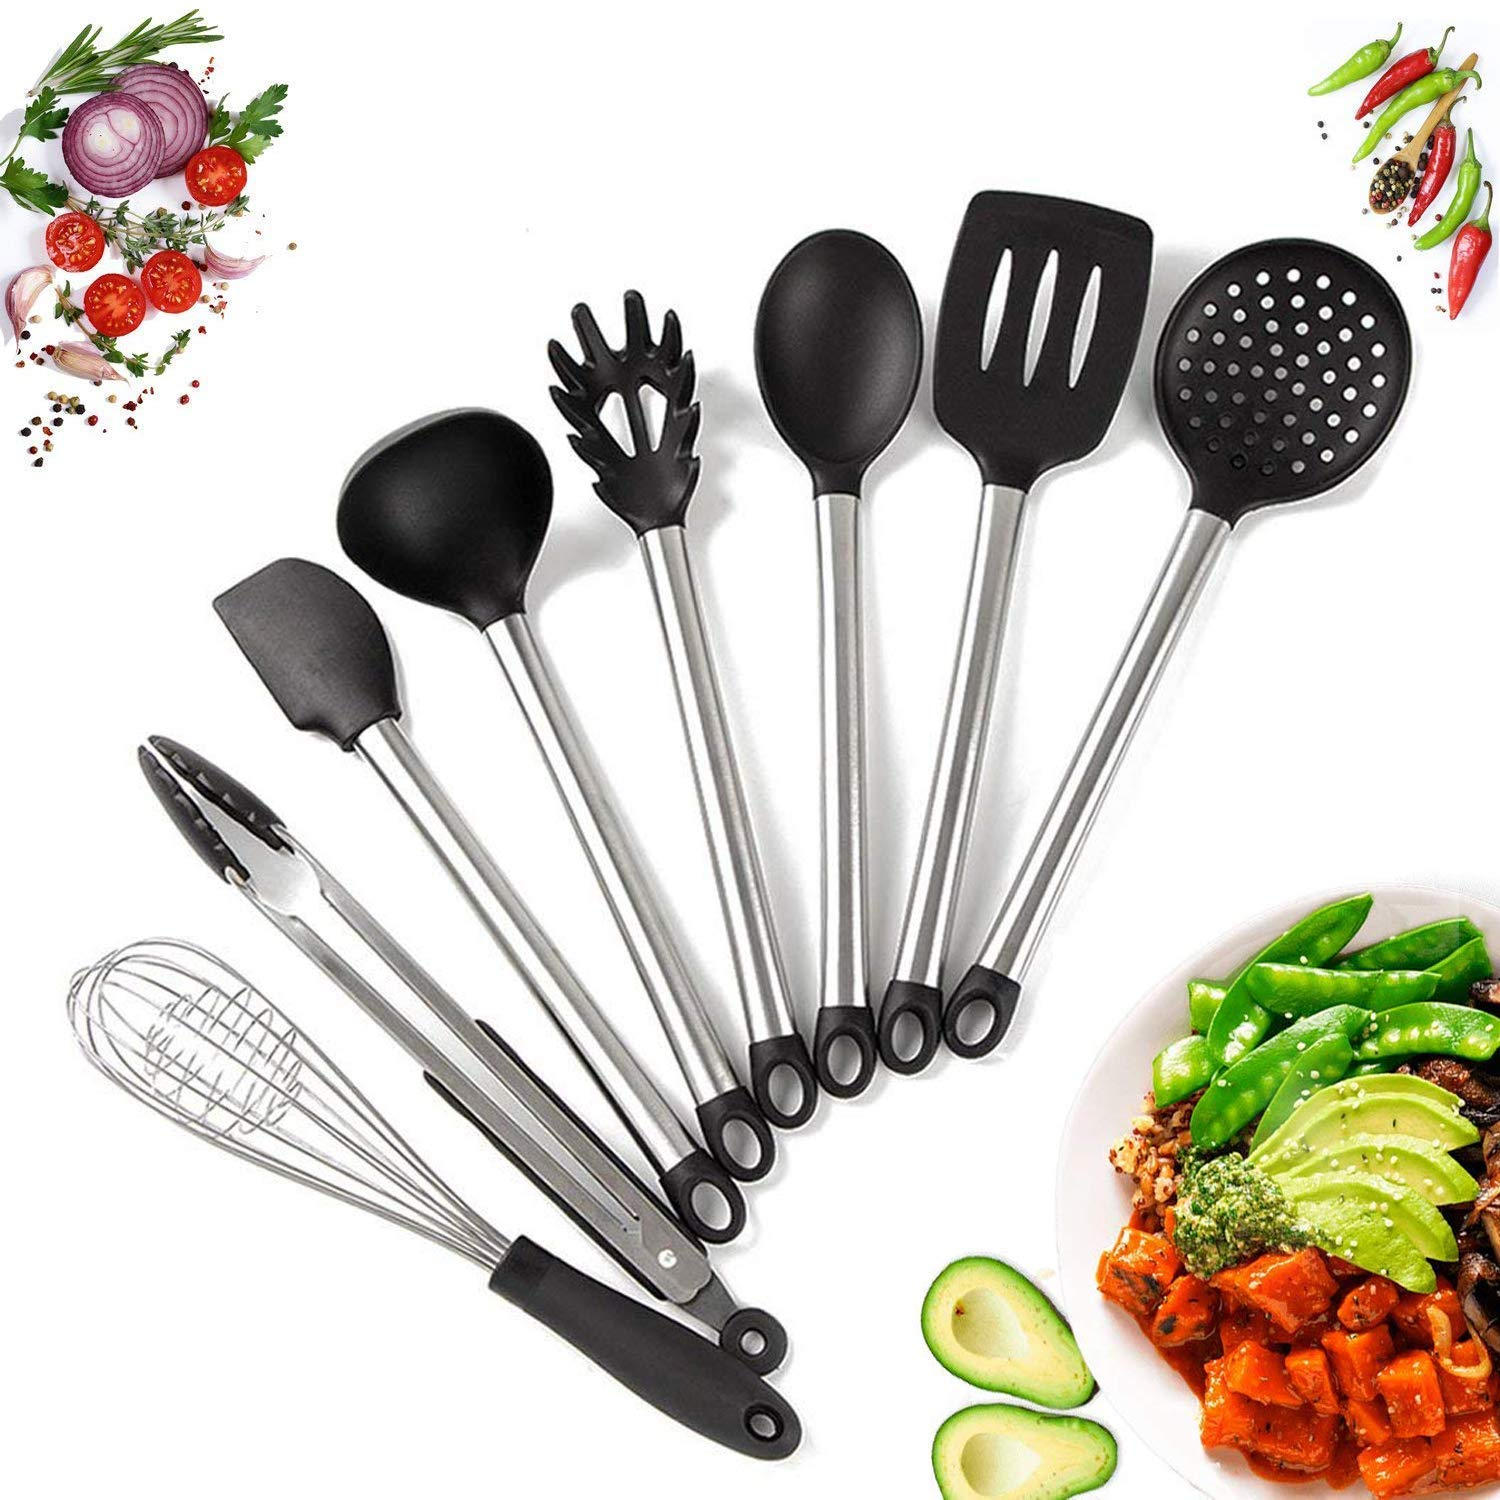 Premium Silicone Kitchen Utensil Set with Holder- 7 Piece Cooking Utensil Set with Easy to Clean Natural Wooden Handles- Holder Included Chef's Selection